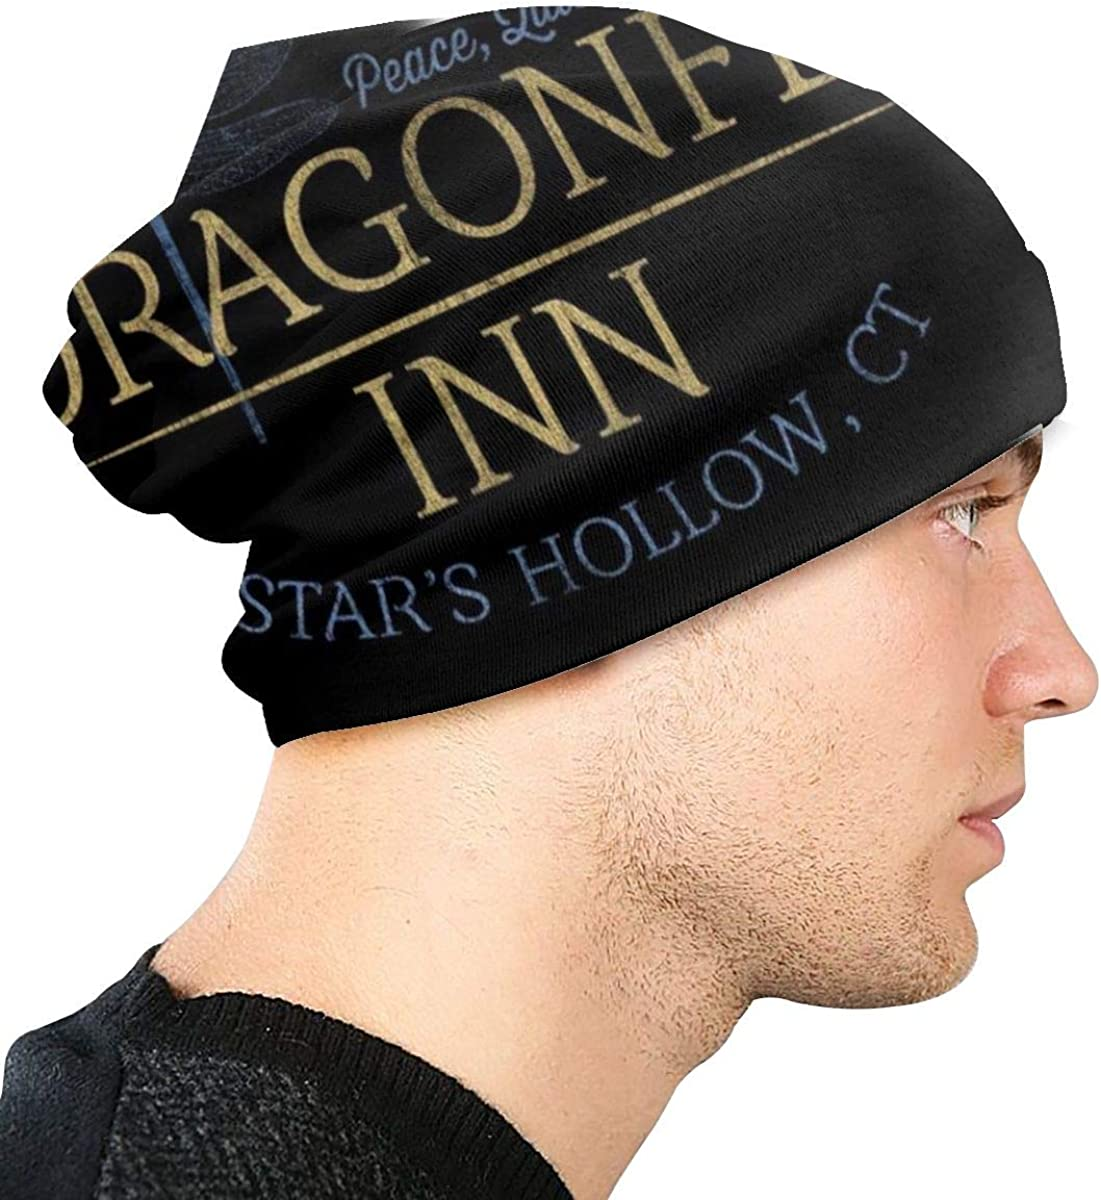 Slouchy Knit Beanie for Men & Women - Winter Toboggan Hats for Cold Weather Gilmore Girls Inspired Dragonfly Inn Beanie Cap Black